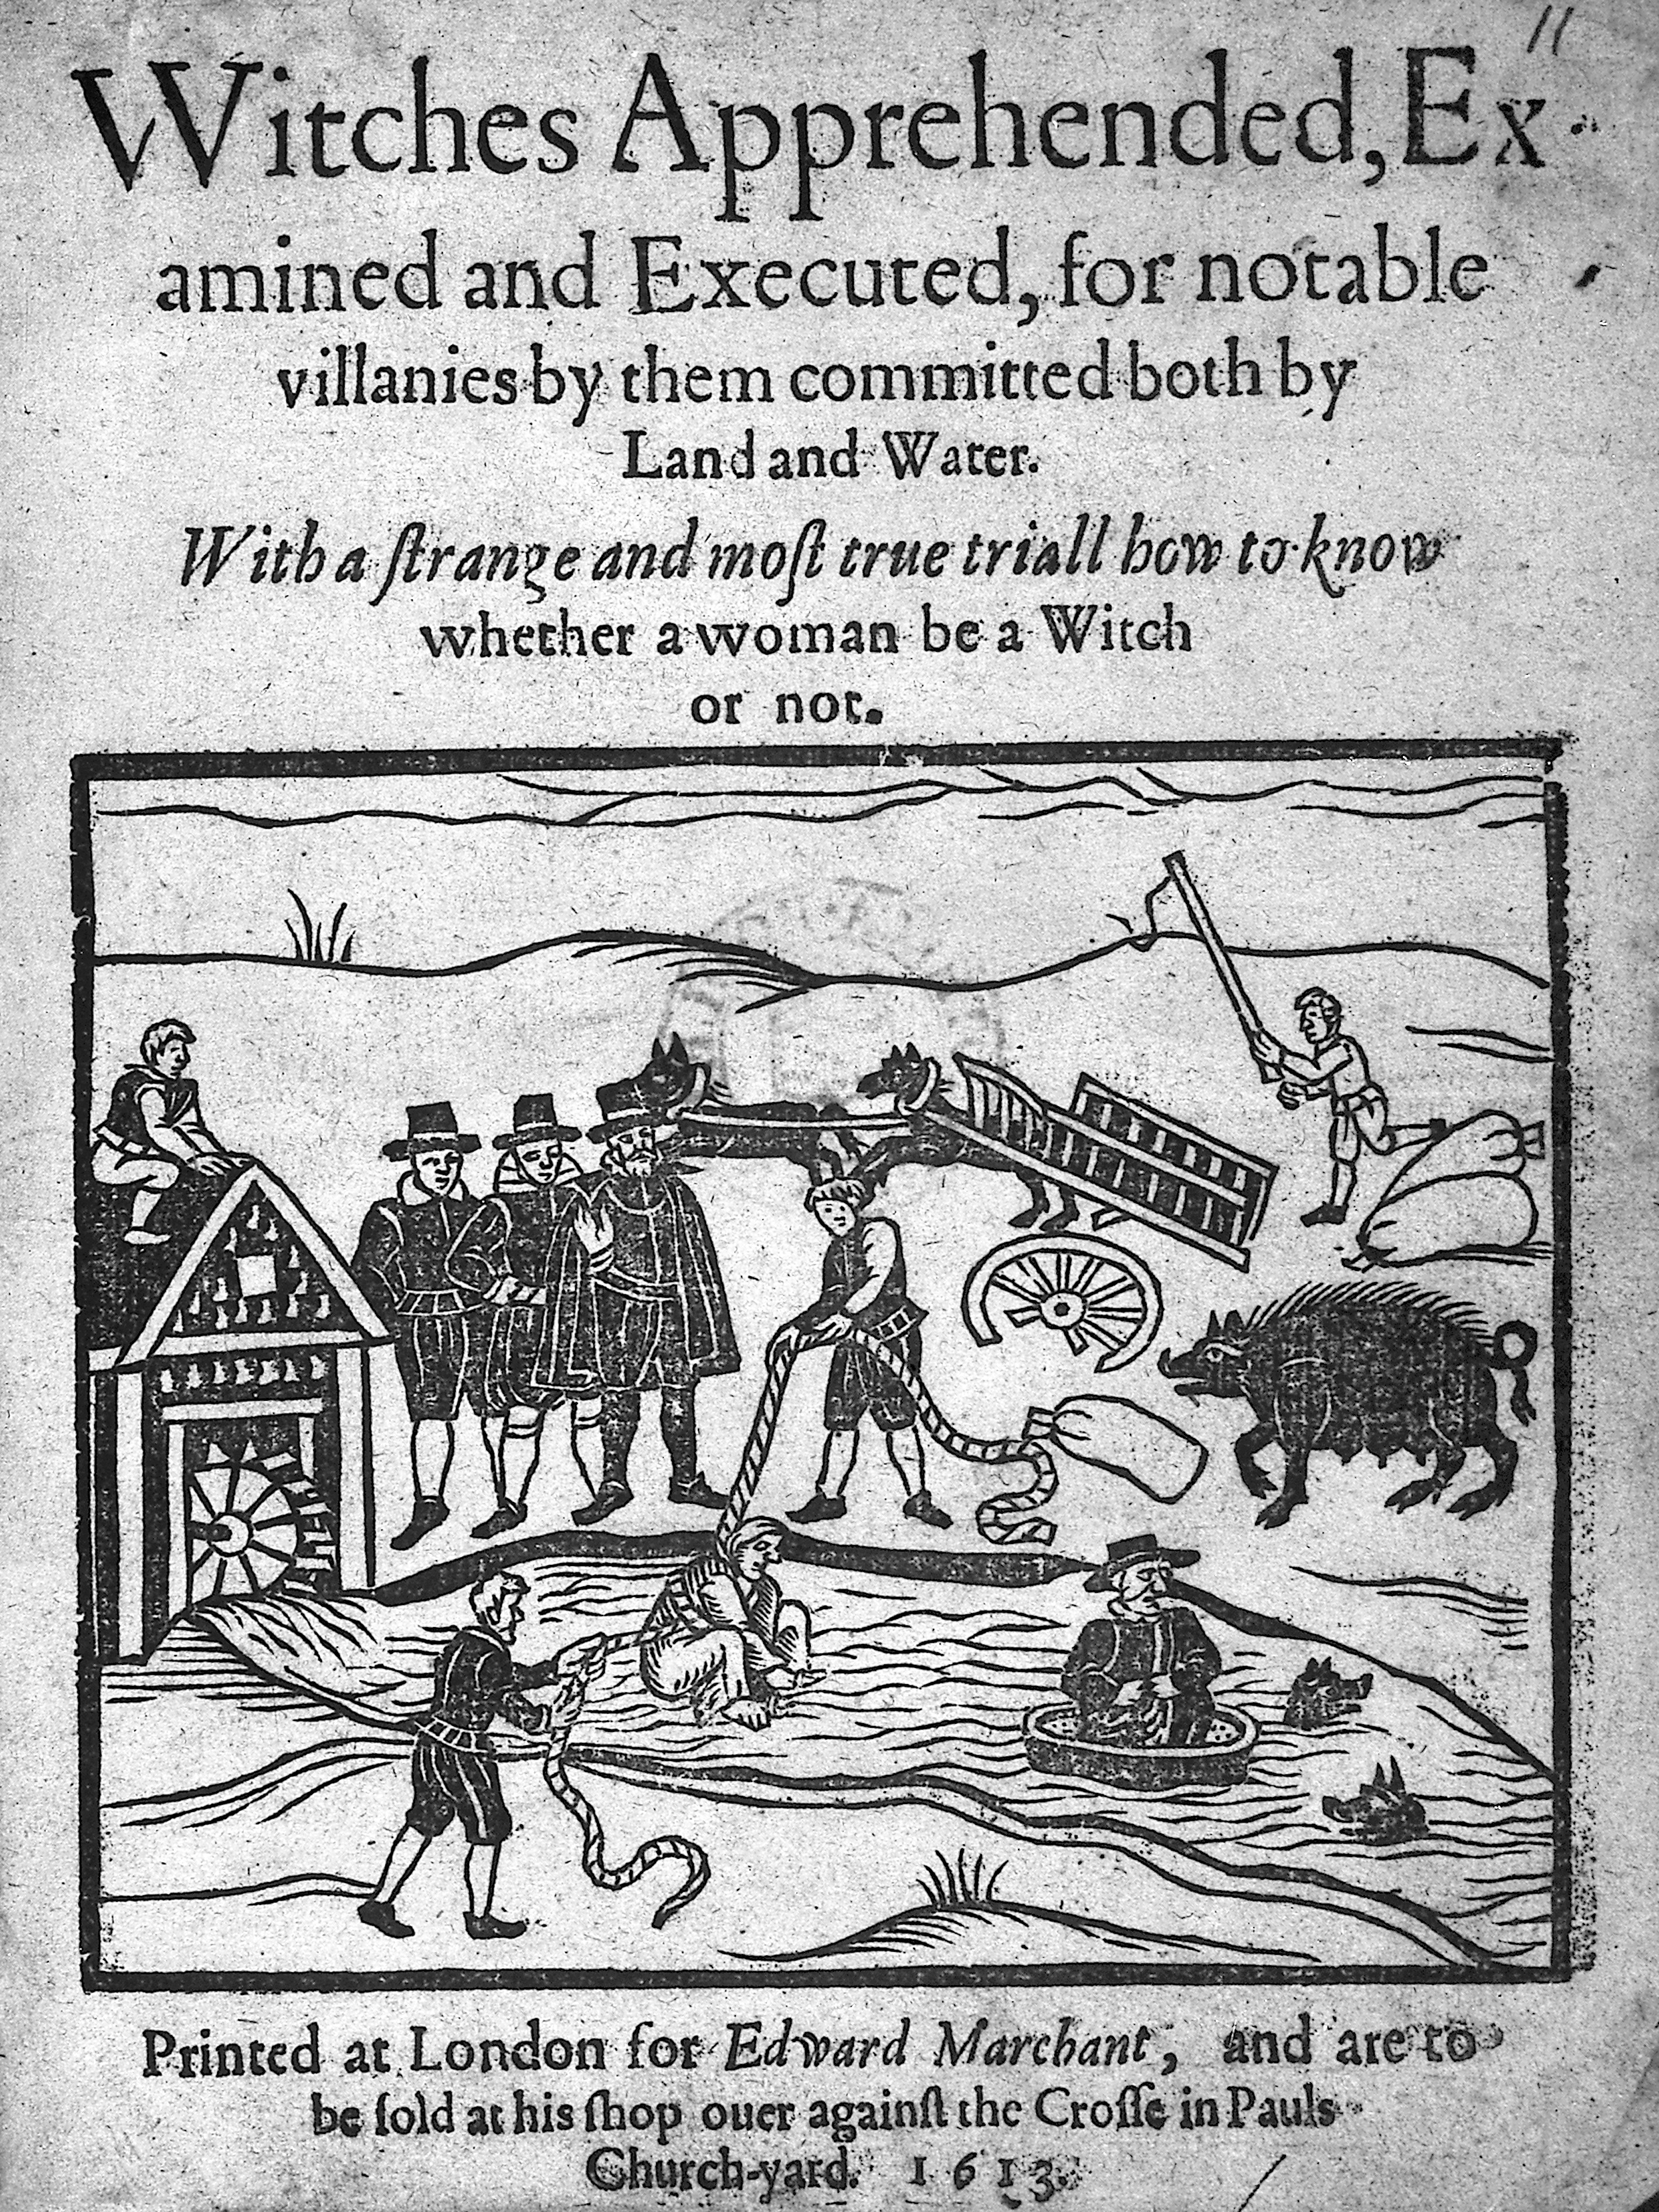 File:Witches apprehended..., 1613 Wellcome M0016701.jpg